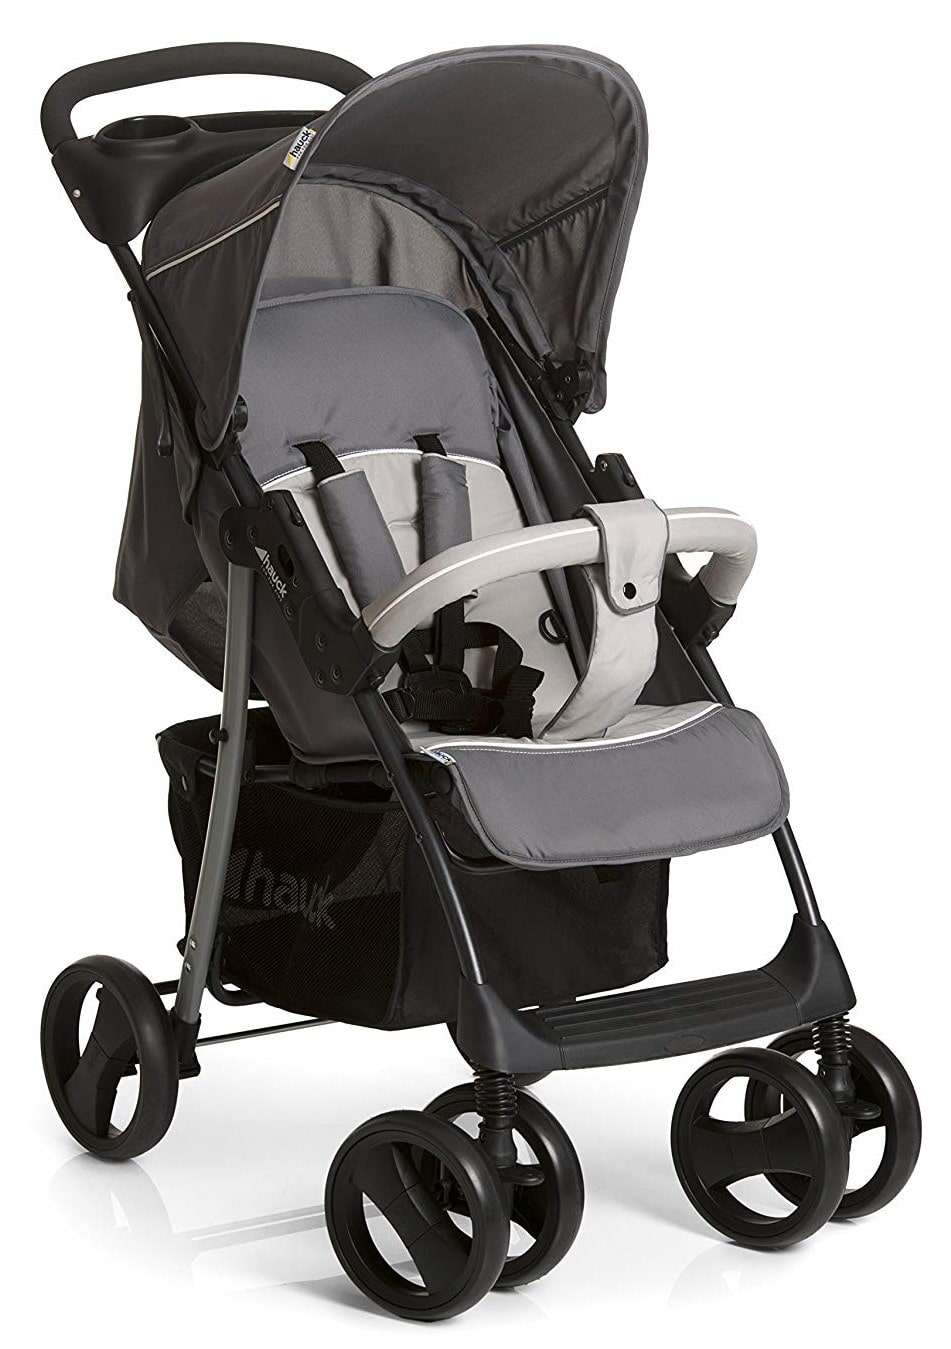 Hauk shopper SLX